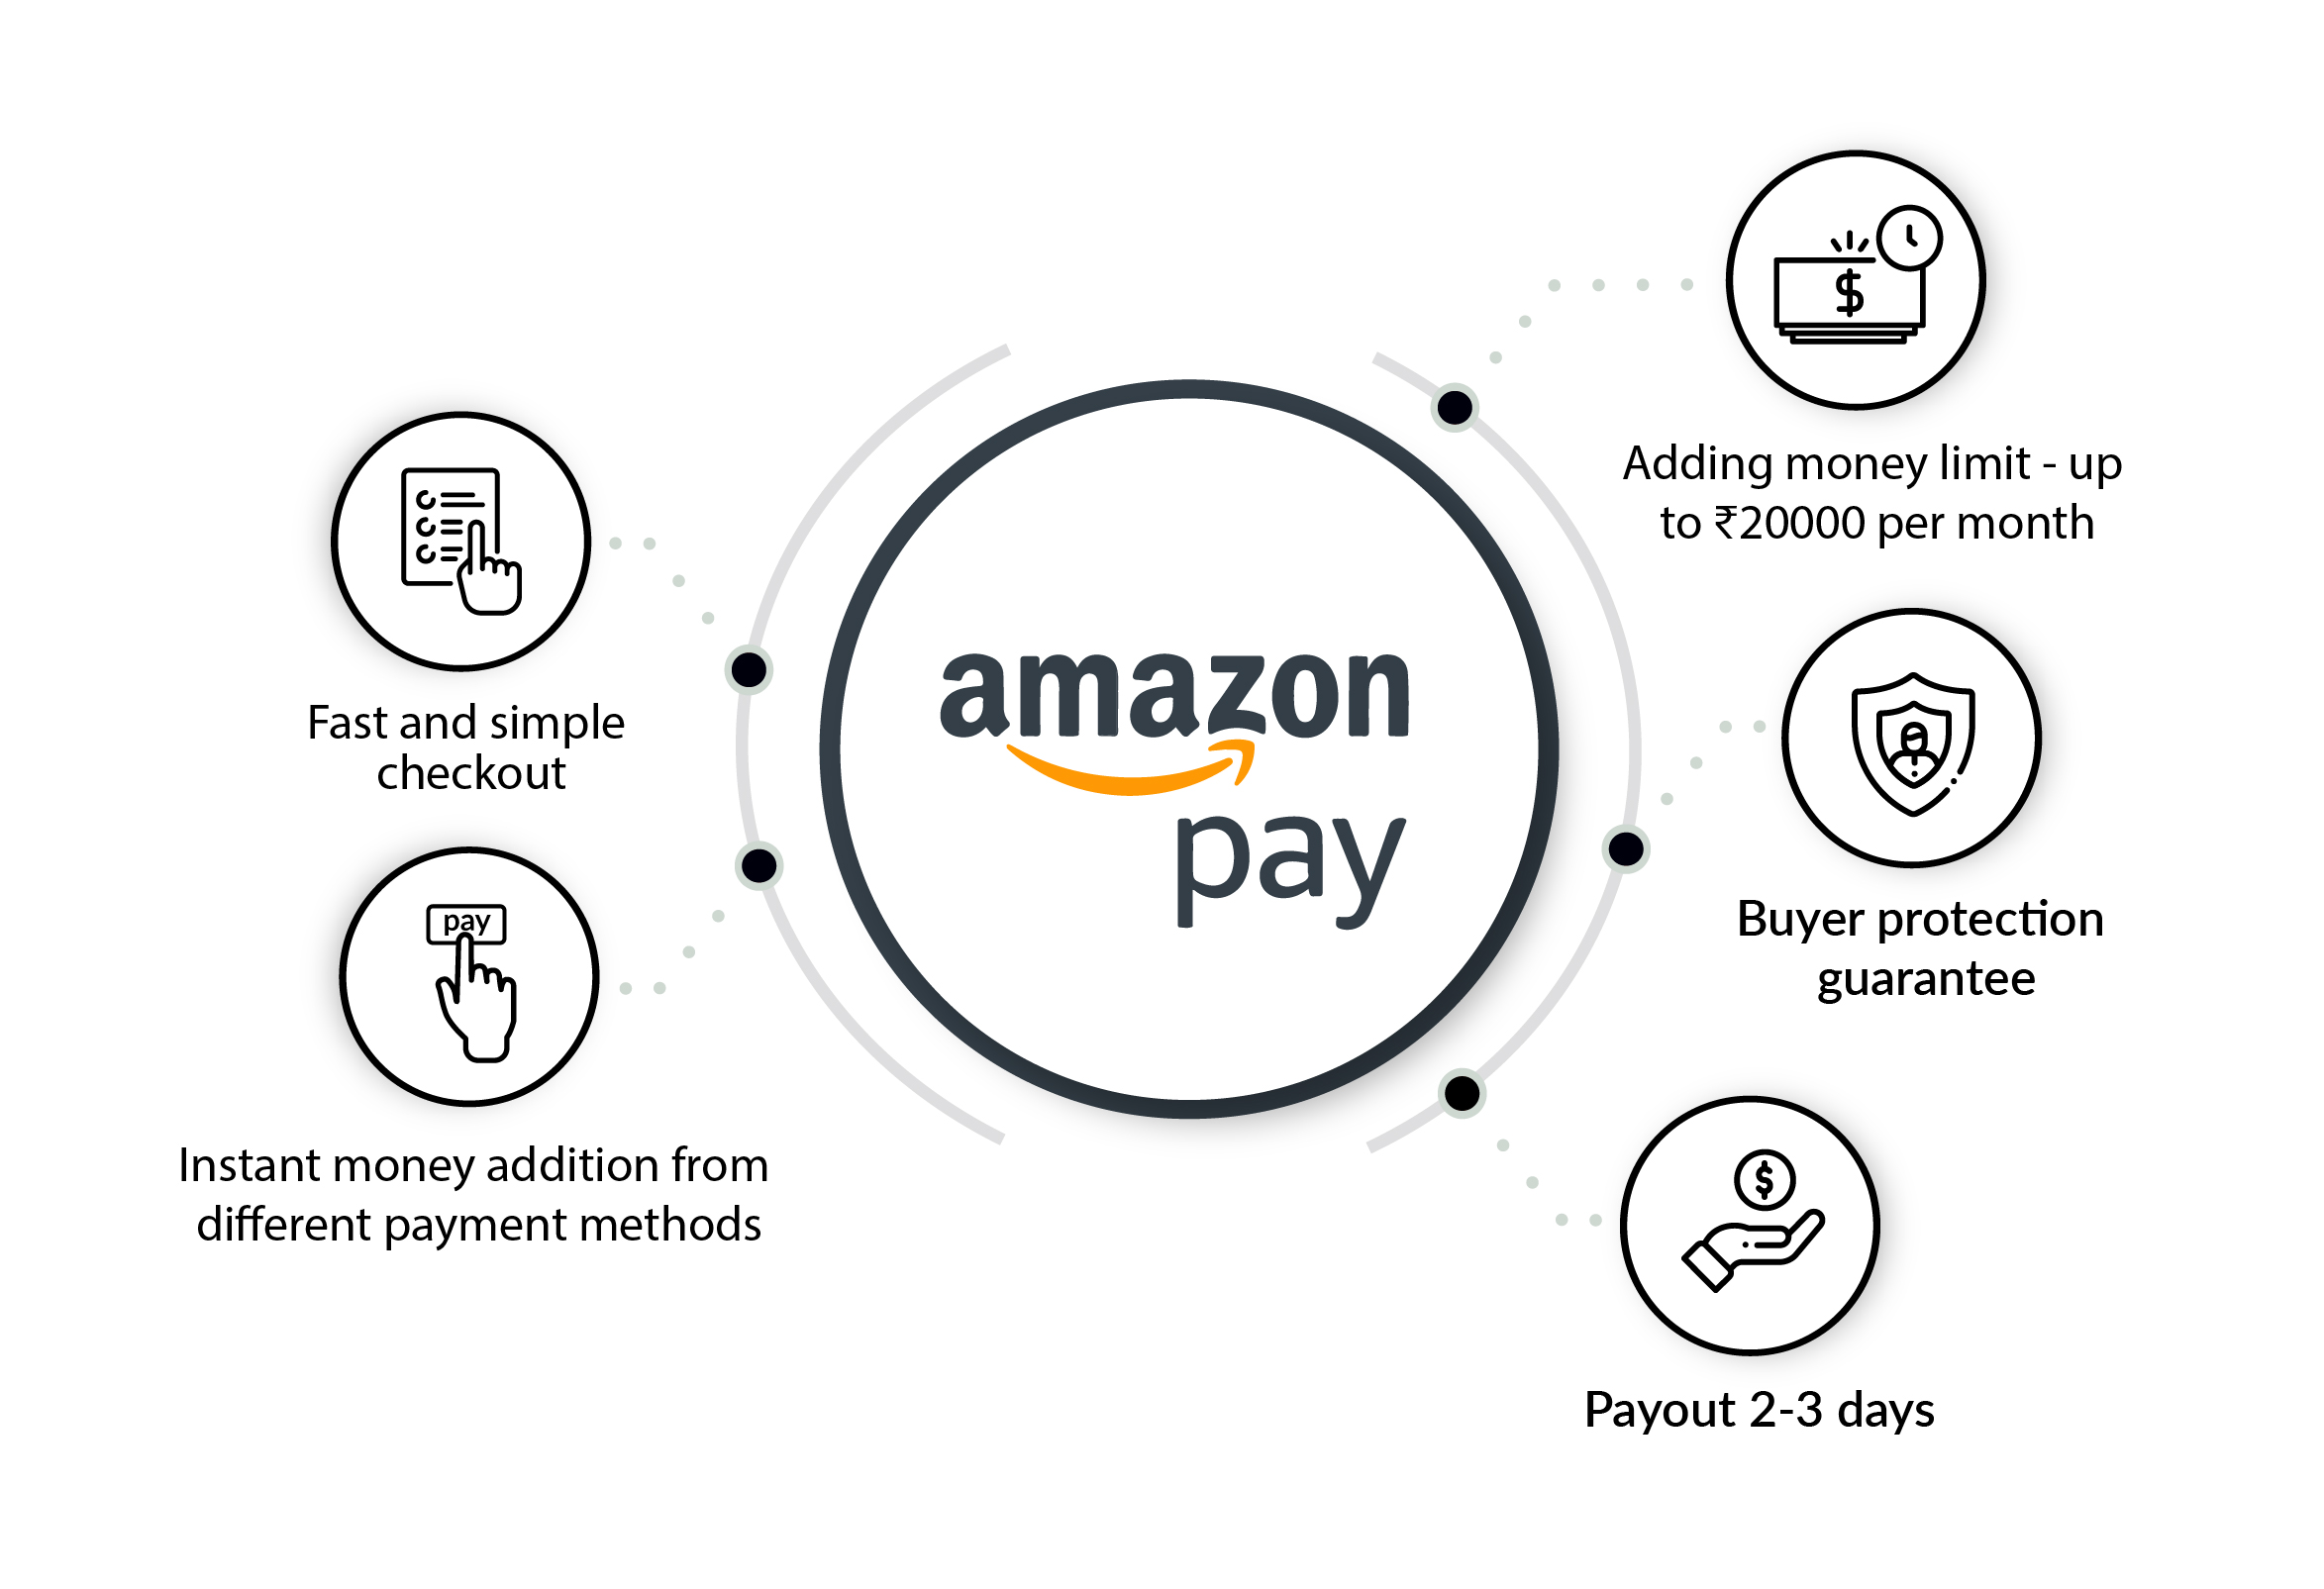 Amazon Pay features